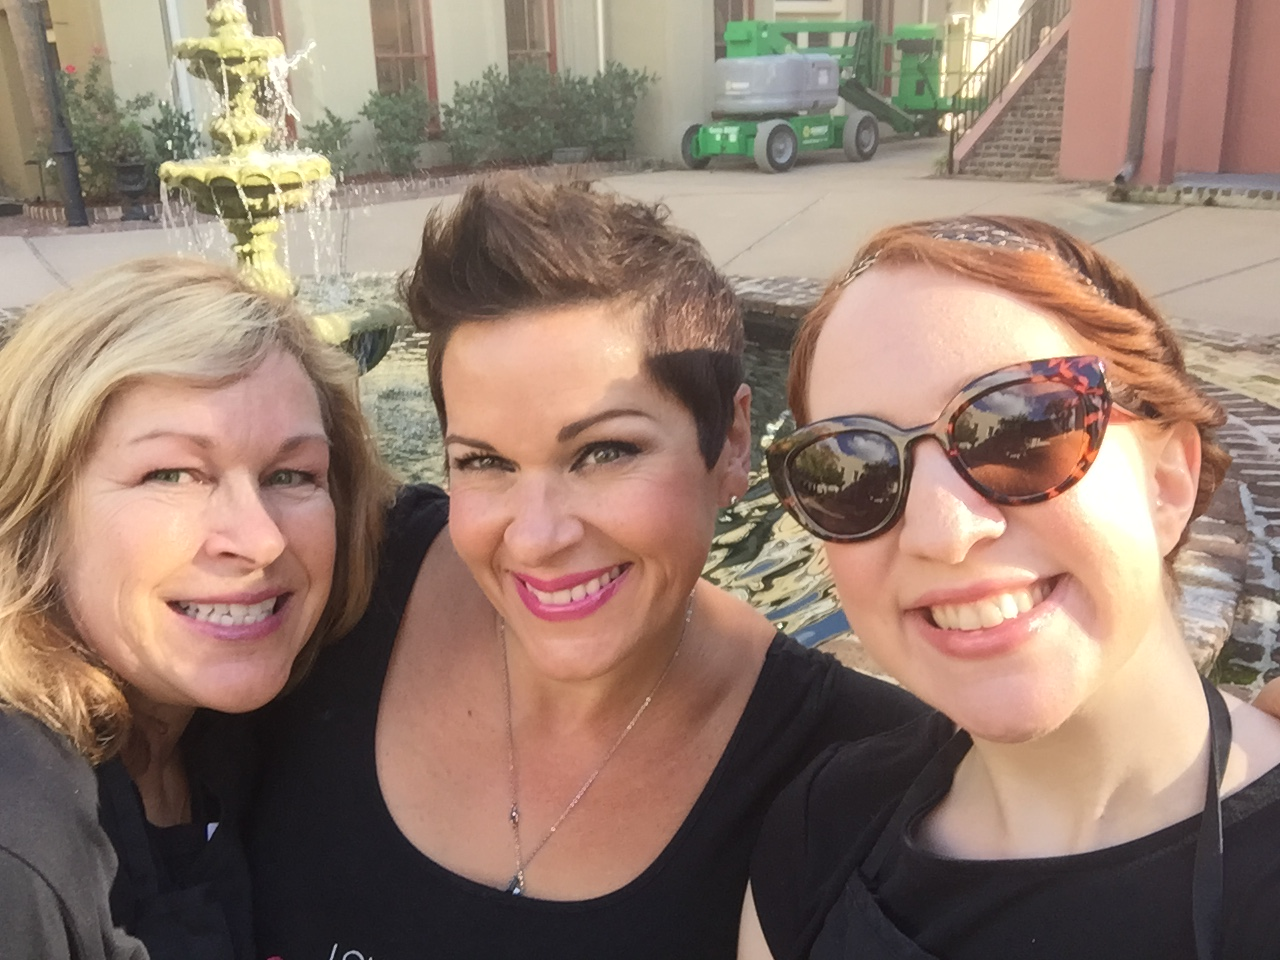 Sandy, Lou, and Alex selfie it up real quick before heading to their wedding!